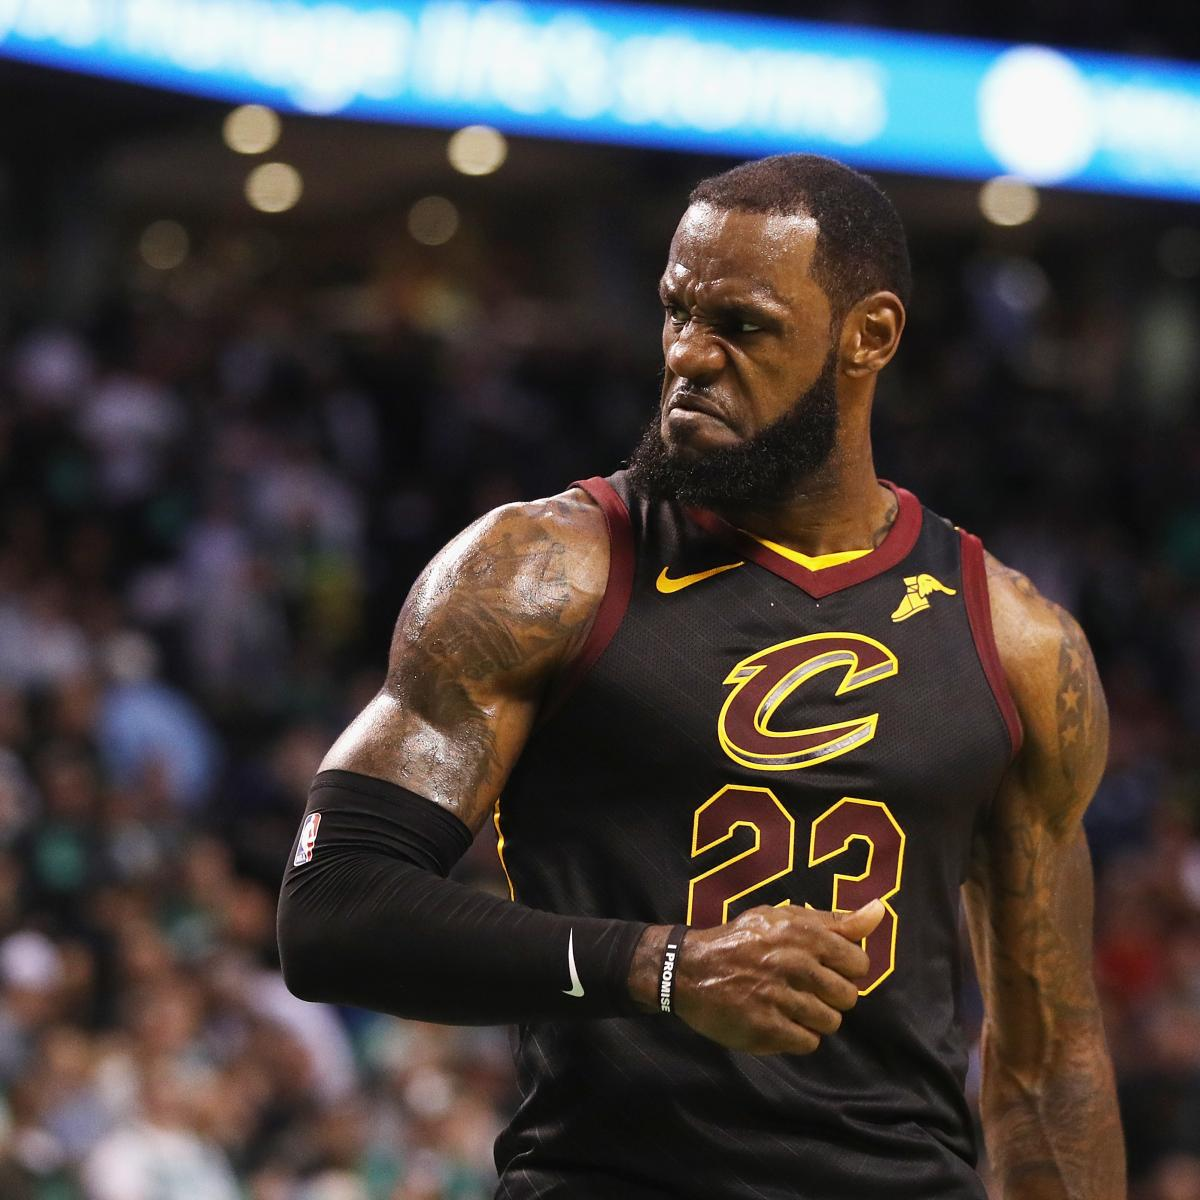 NBA Finals 2018: Dates, Game Times, TV Schedule For